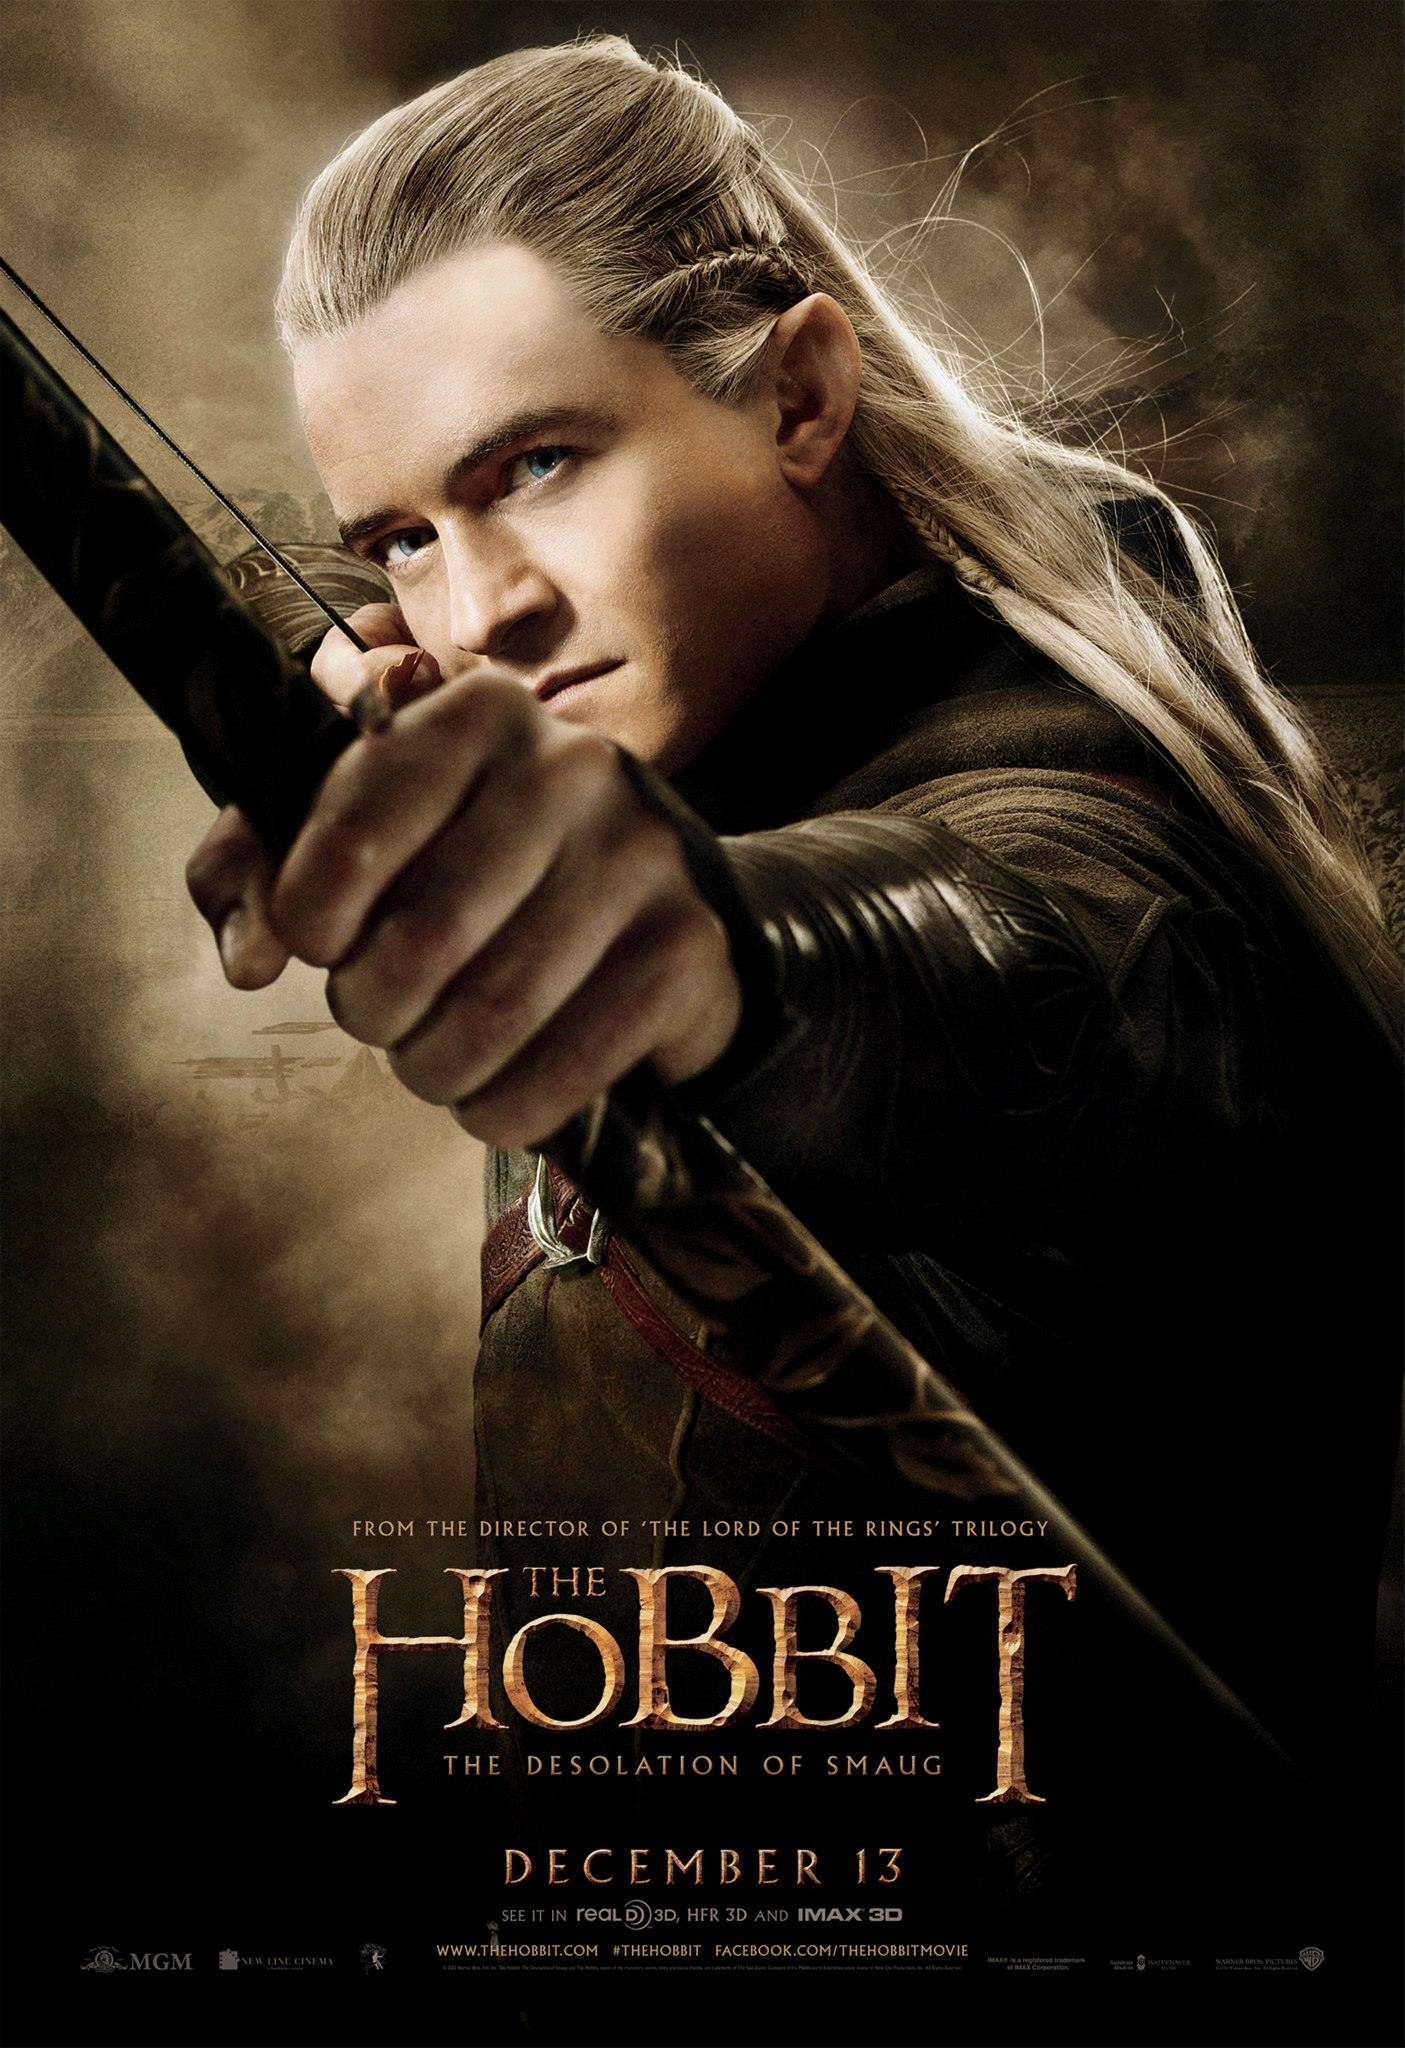 The Hobbit The Desolation of Smaug-Official Poster Banner PROMO POSTER XXLG-04NOVEMBRO2013-04